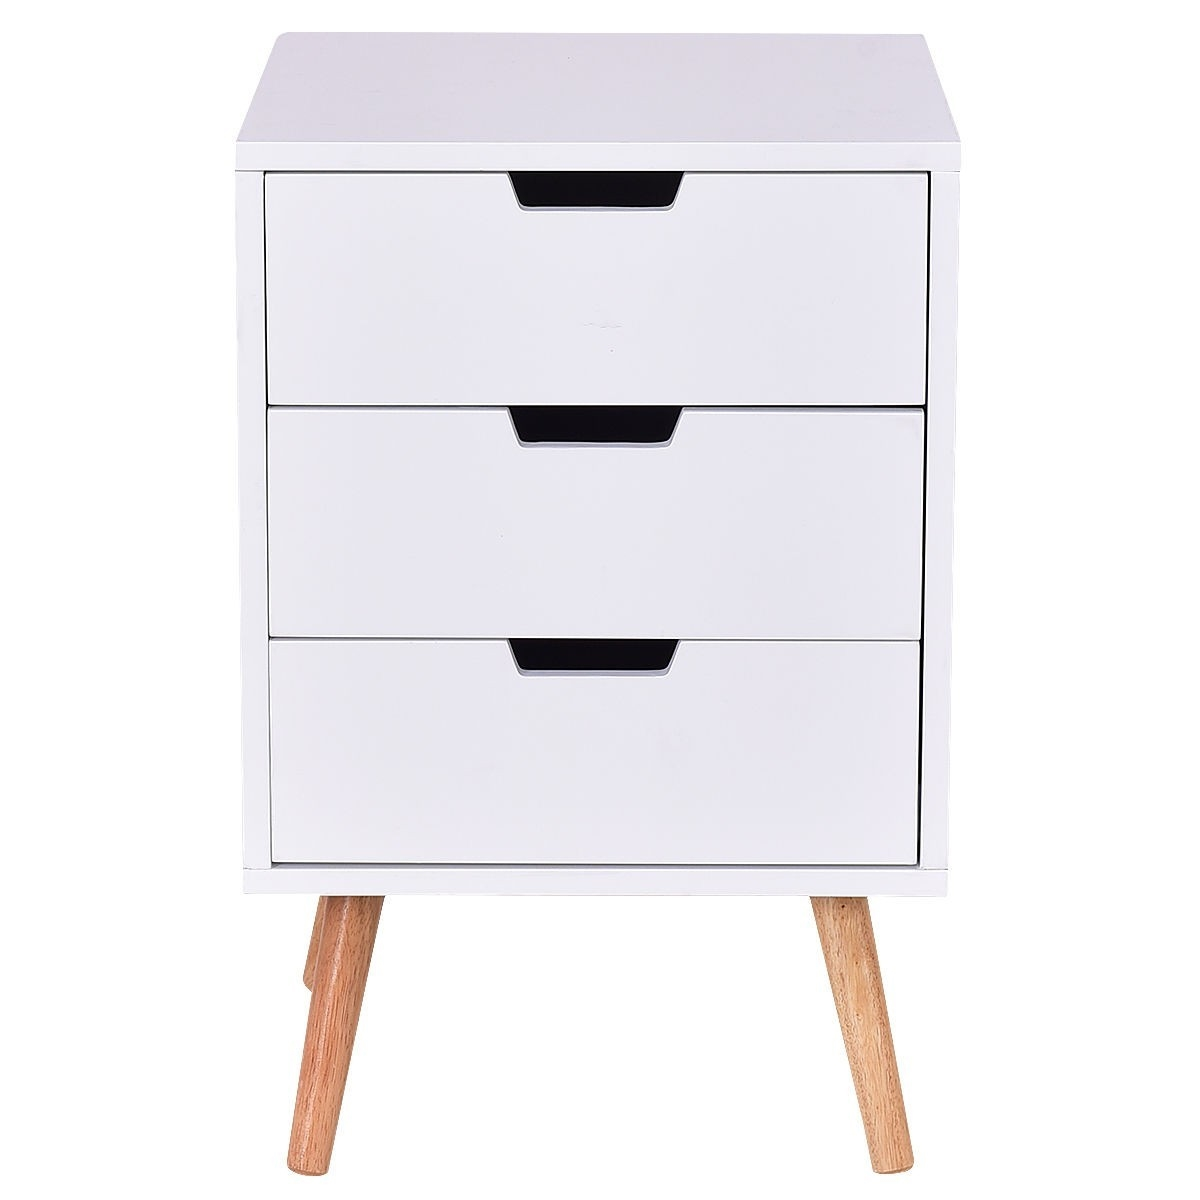 Modern Mid Century Style 3 Drawer White Wood End Table Nightstand Fastfurnishings Com